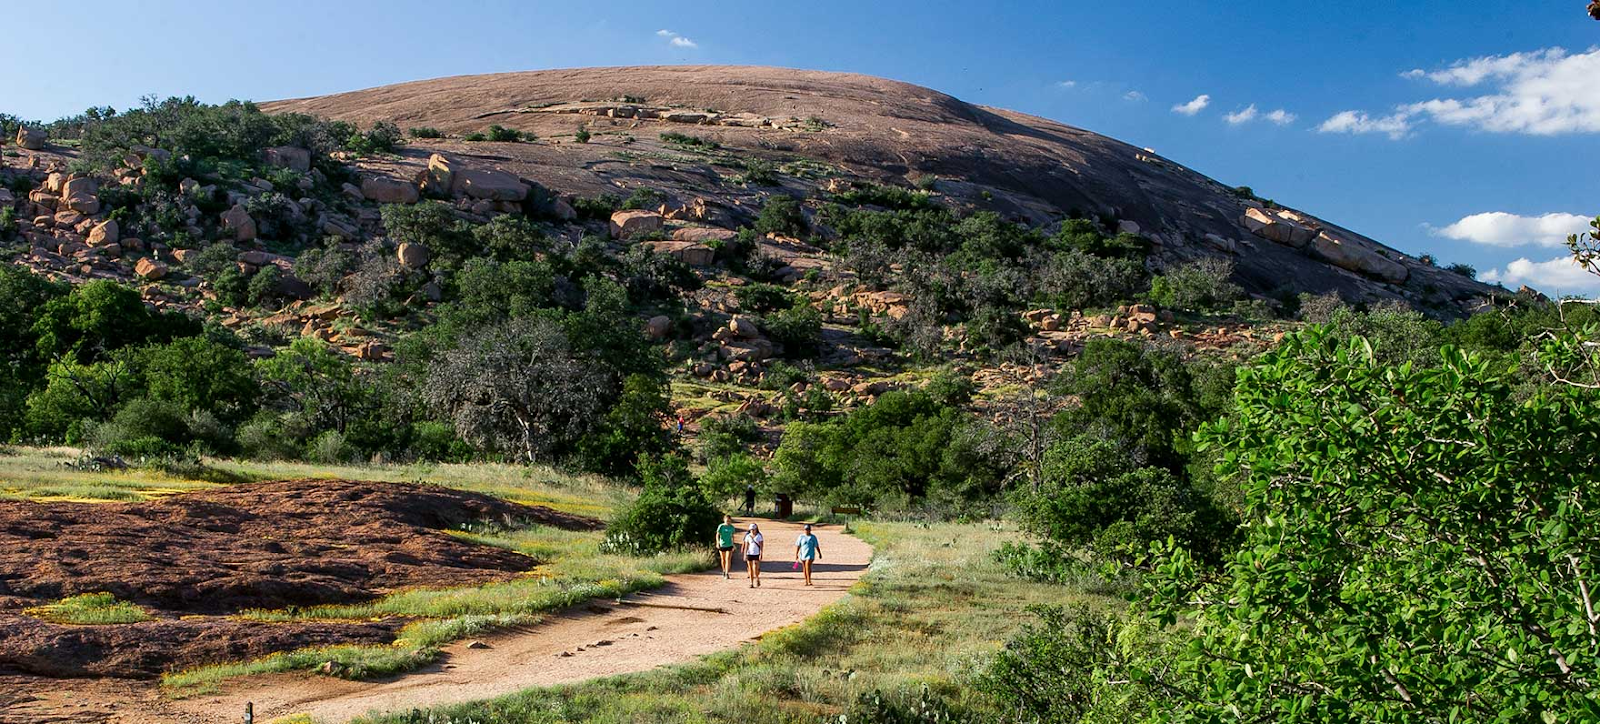 Enchanted Rock Landscape View